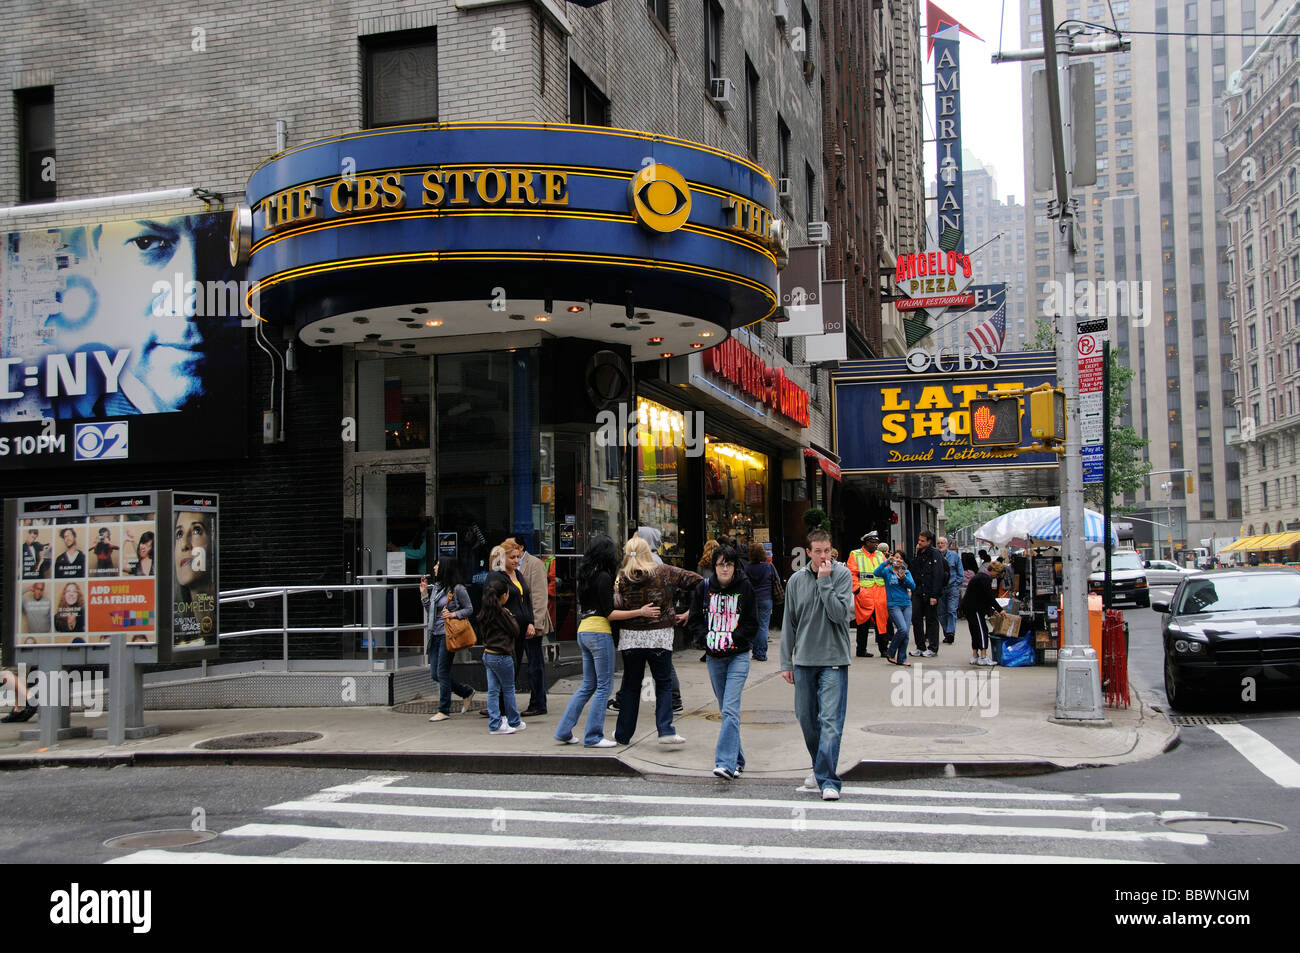 Watch CBS television online. Find CBS primetime, daytime, late night, and classic tv episodes, videos, and information.